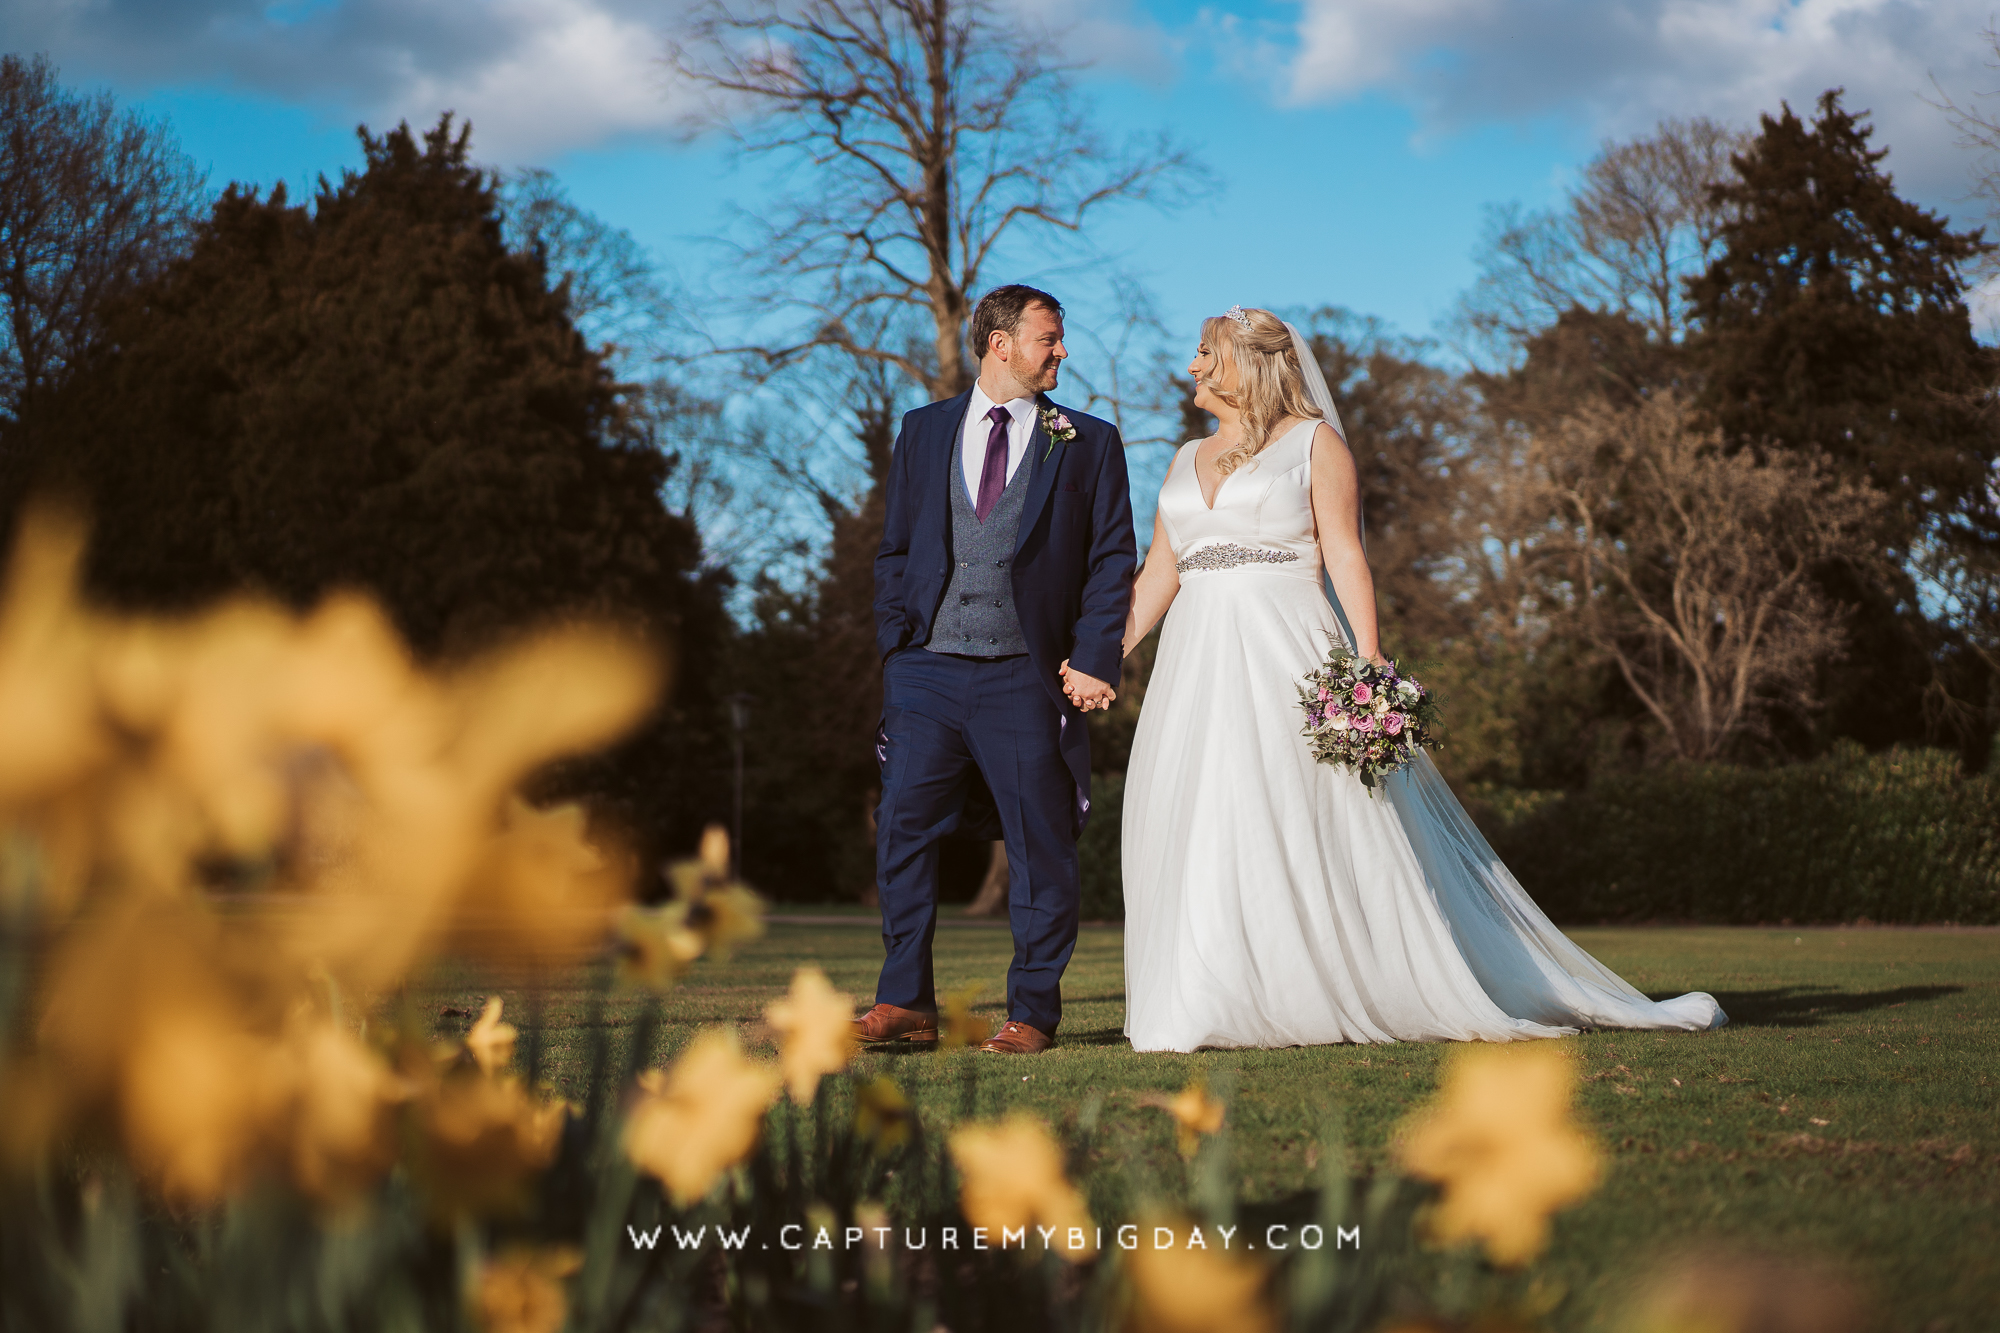 Wrenbury Hall wedding